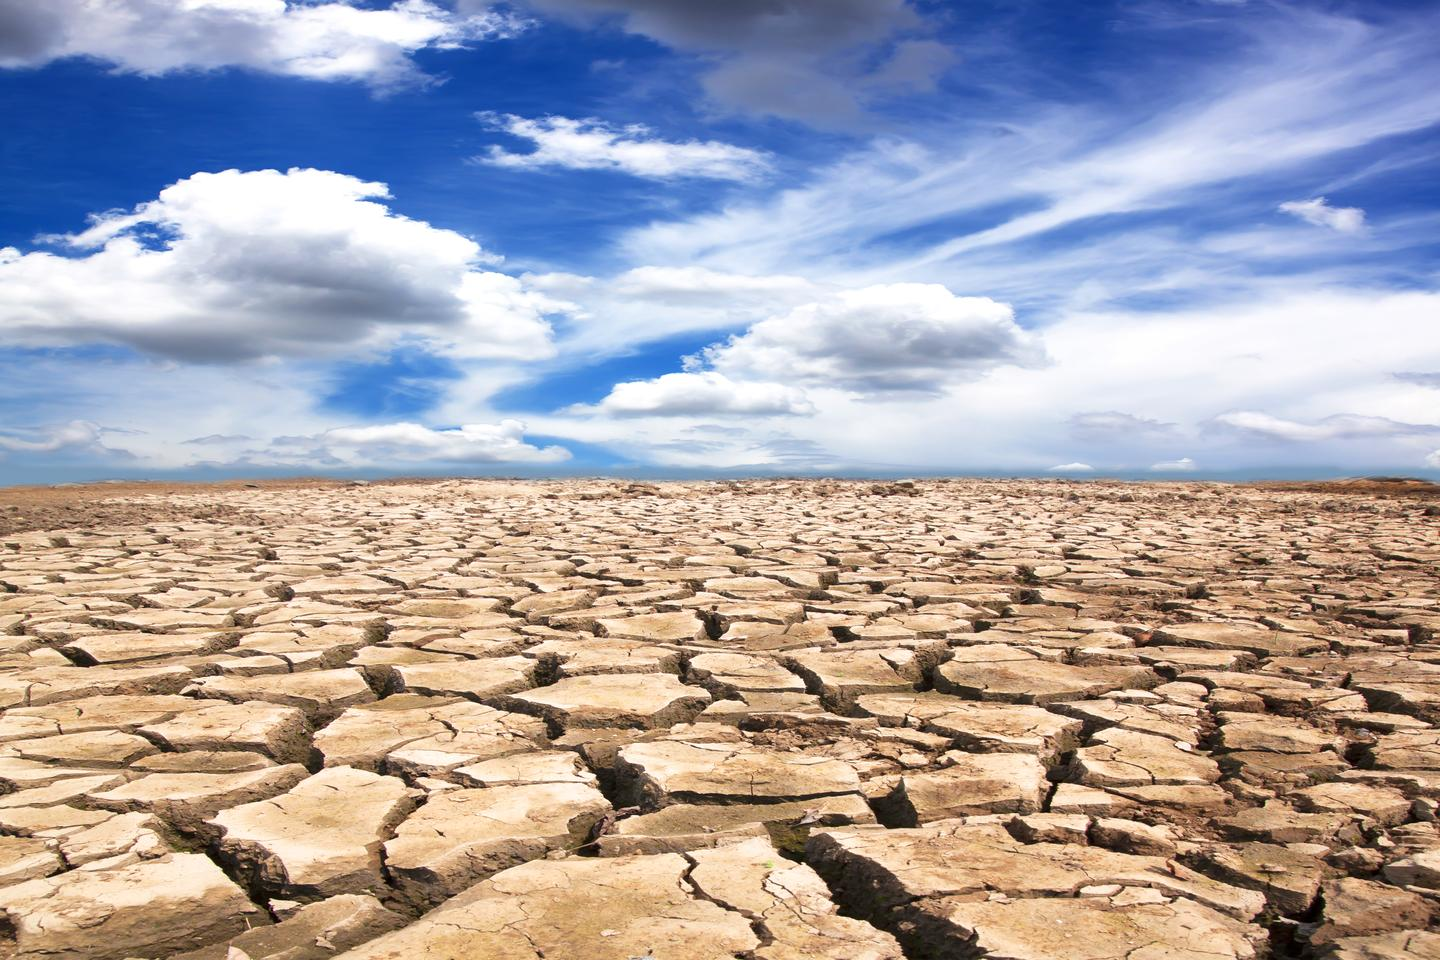 The collapse of the Atlantic Meridional Overturning Circulation would trigger cooling and sea level rises in the North Atlantic region and encourage drought in central Africa (Photo: Shutterstock)